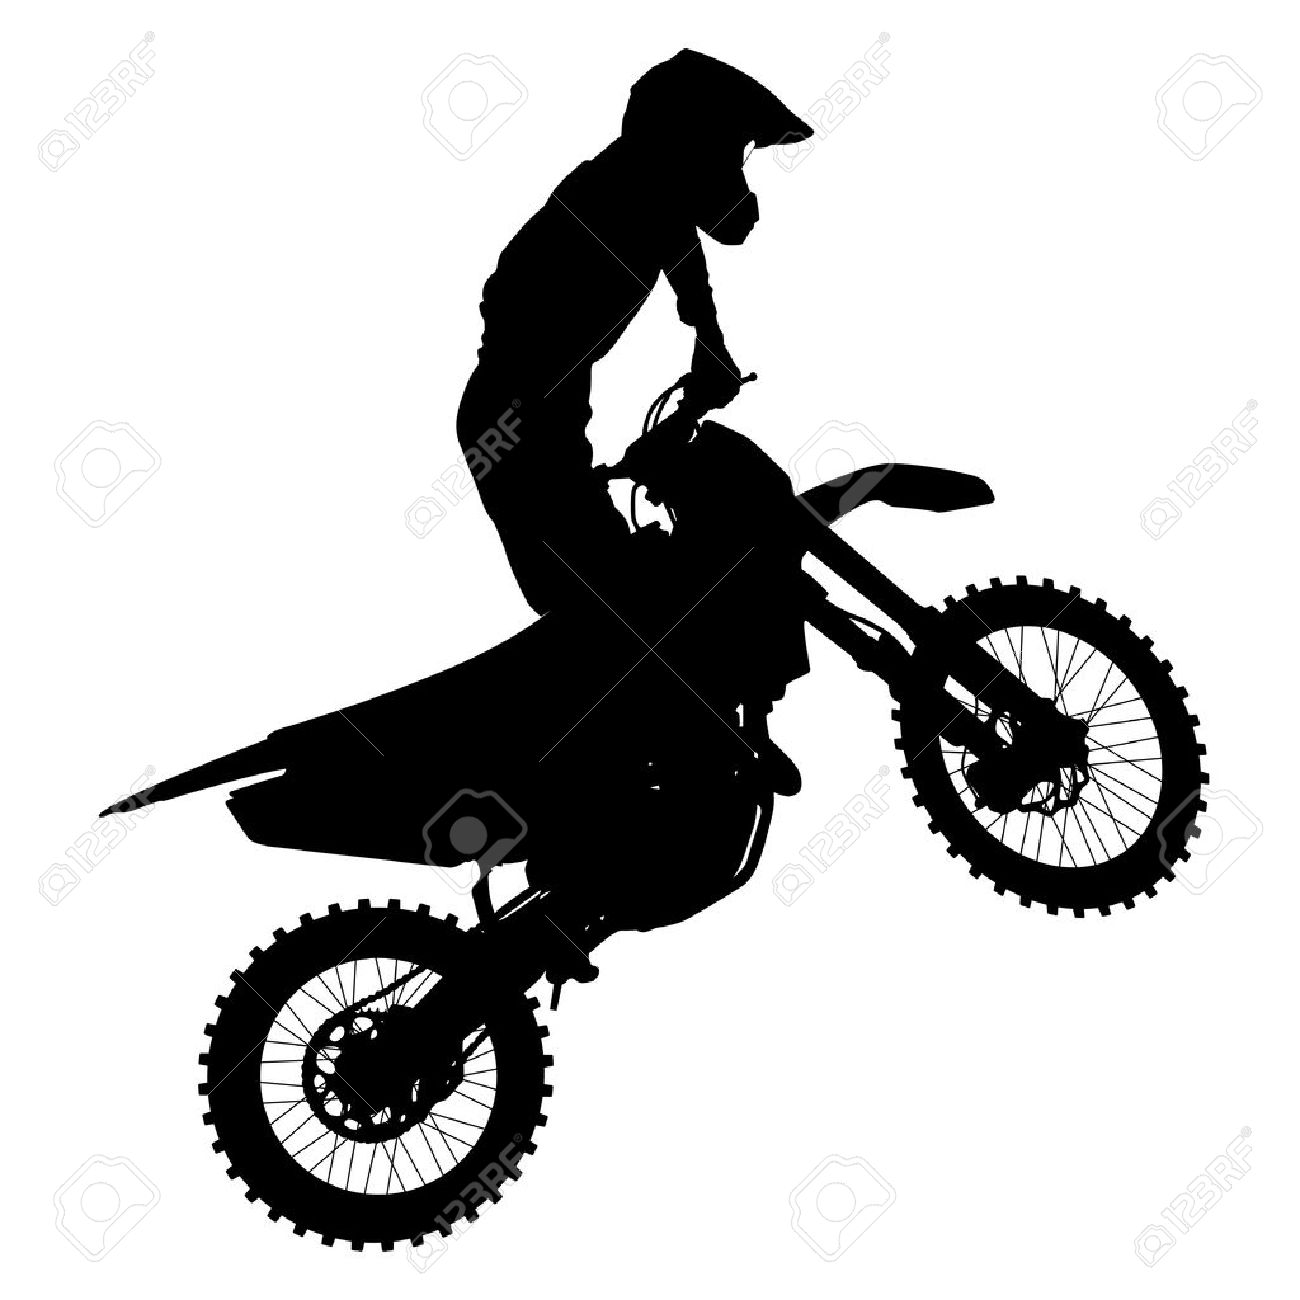 Mx clipart clip black and white stock Royalty-Free Mx Motocross007 369871 Clip A #172696 ... clip black and white stock